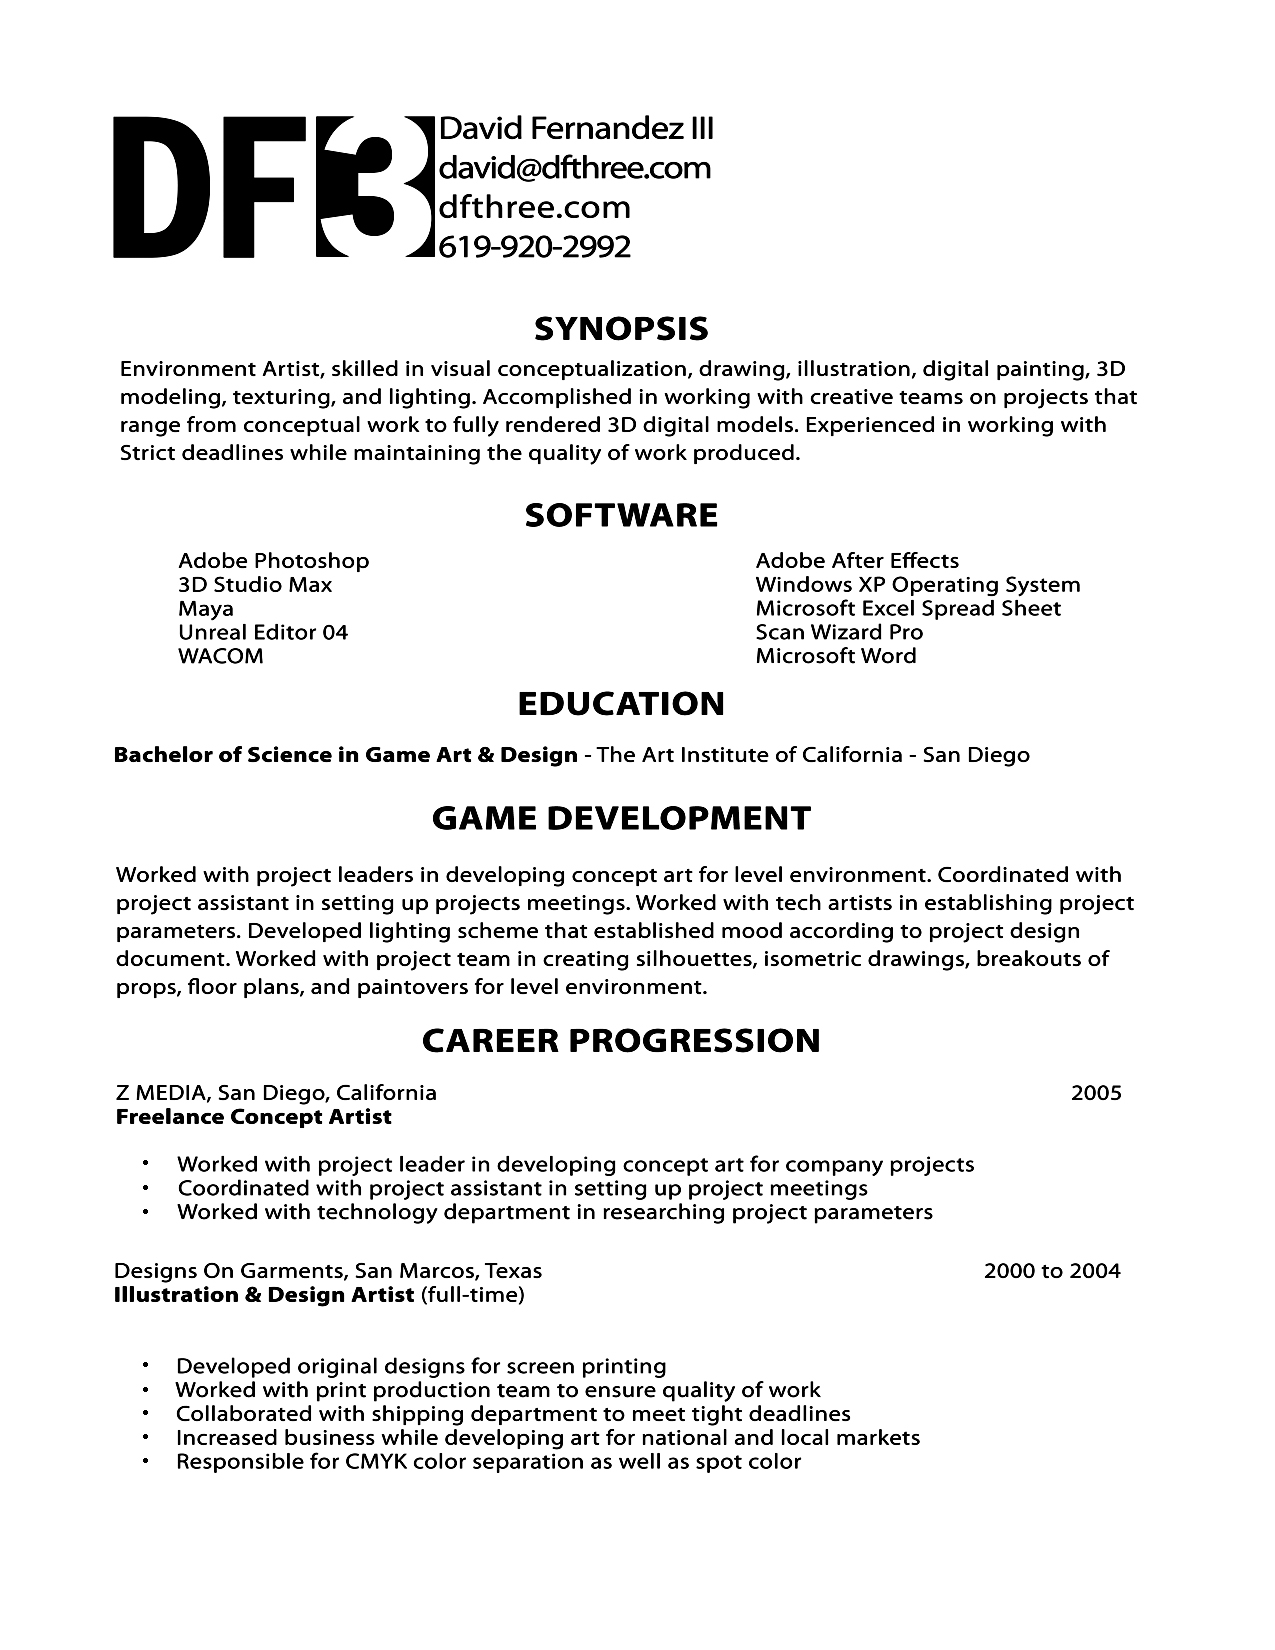 Opposenewapstandardsus  Winsome Game Developer Resume Game Tester Resume Sample Game Tester  With Excellent Better Jobs Faster With Archaic English Teacher Resume Also Adjunct Professor Resume In Addition What To Include In Resume And Government Resume Template As Well As Team Leader Resume Additionally Example College Resume From Kelseymarieco With Opposenewapstandardsus  Excellent Game Developer Resume Game Tester Resume Sample Game Tester  With Archaic Better Jobs Faster And Winsome English Teacher Resume Also Adjunct Professor Resume In Addition What To Include In Resume From Kelseymarieco